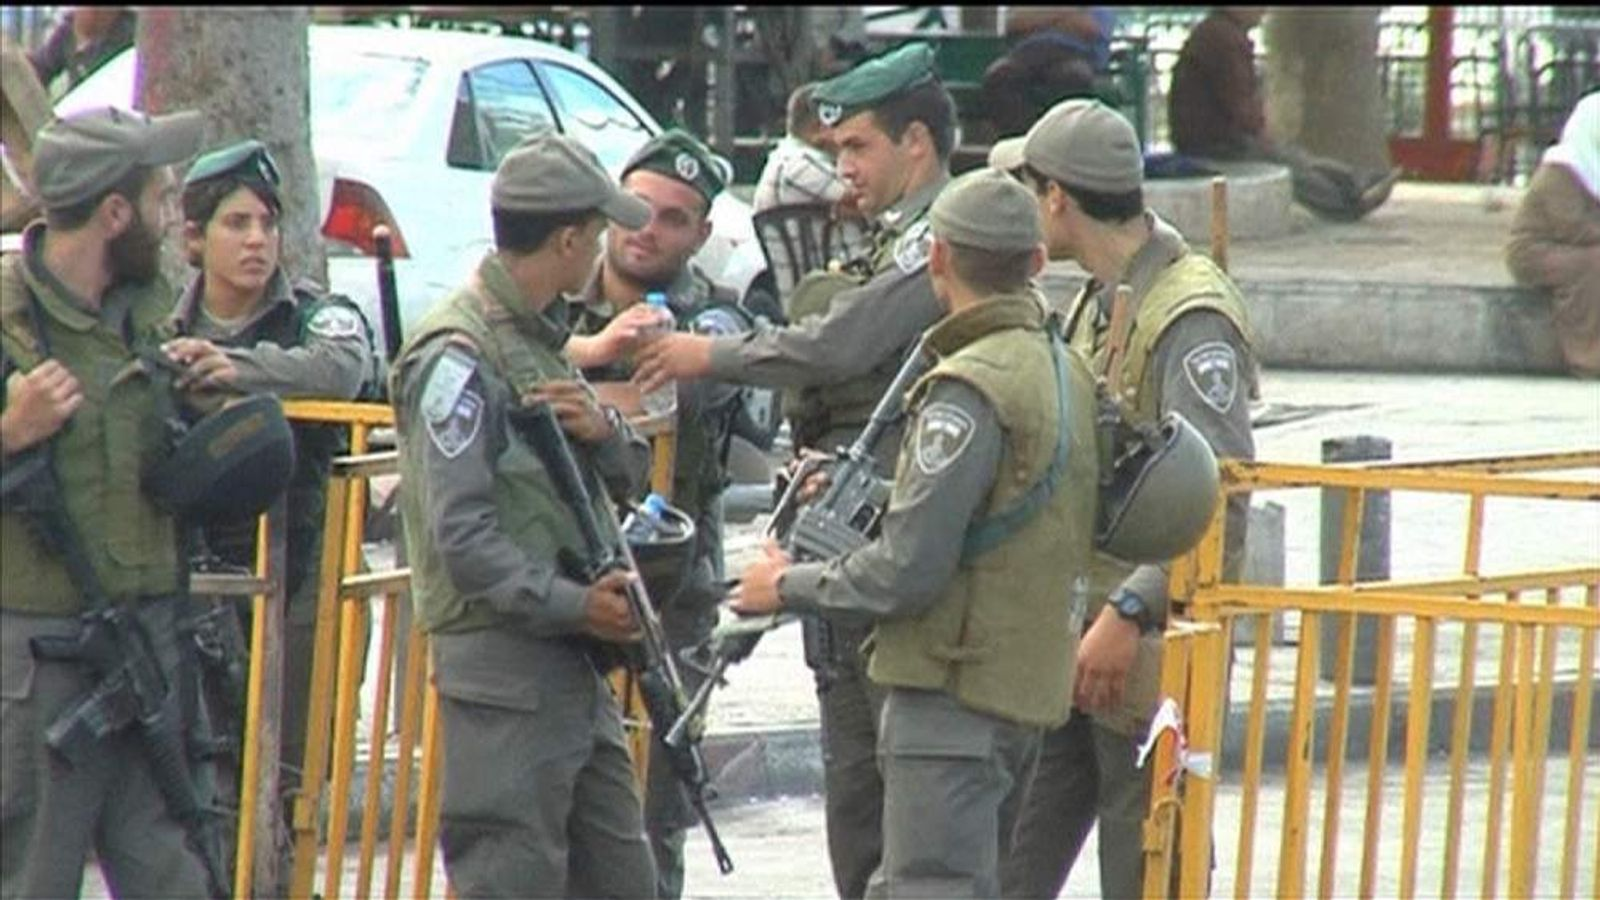 Israeli soldiers near the Temple Mount in Jerusalem